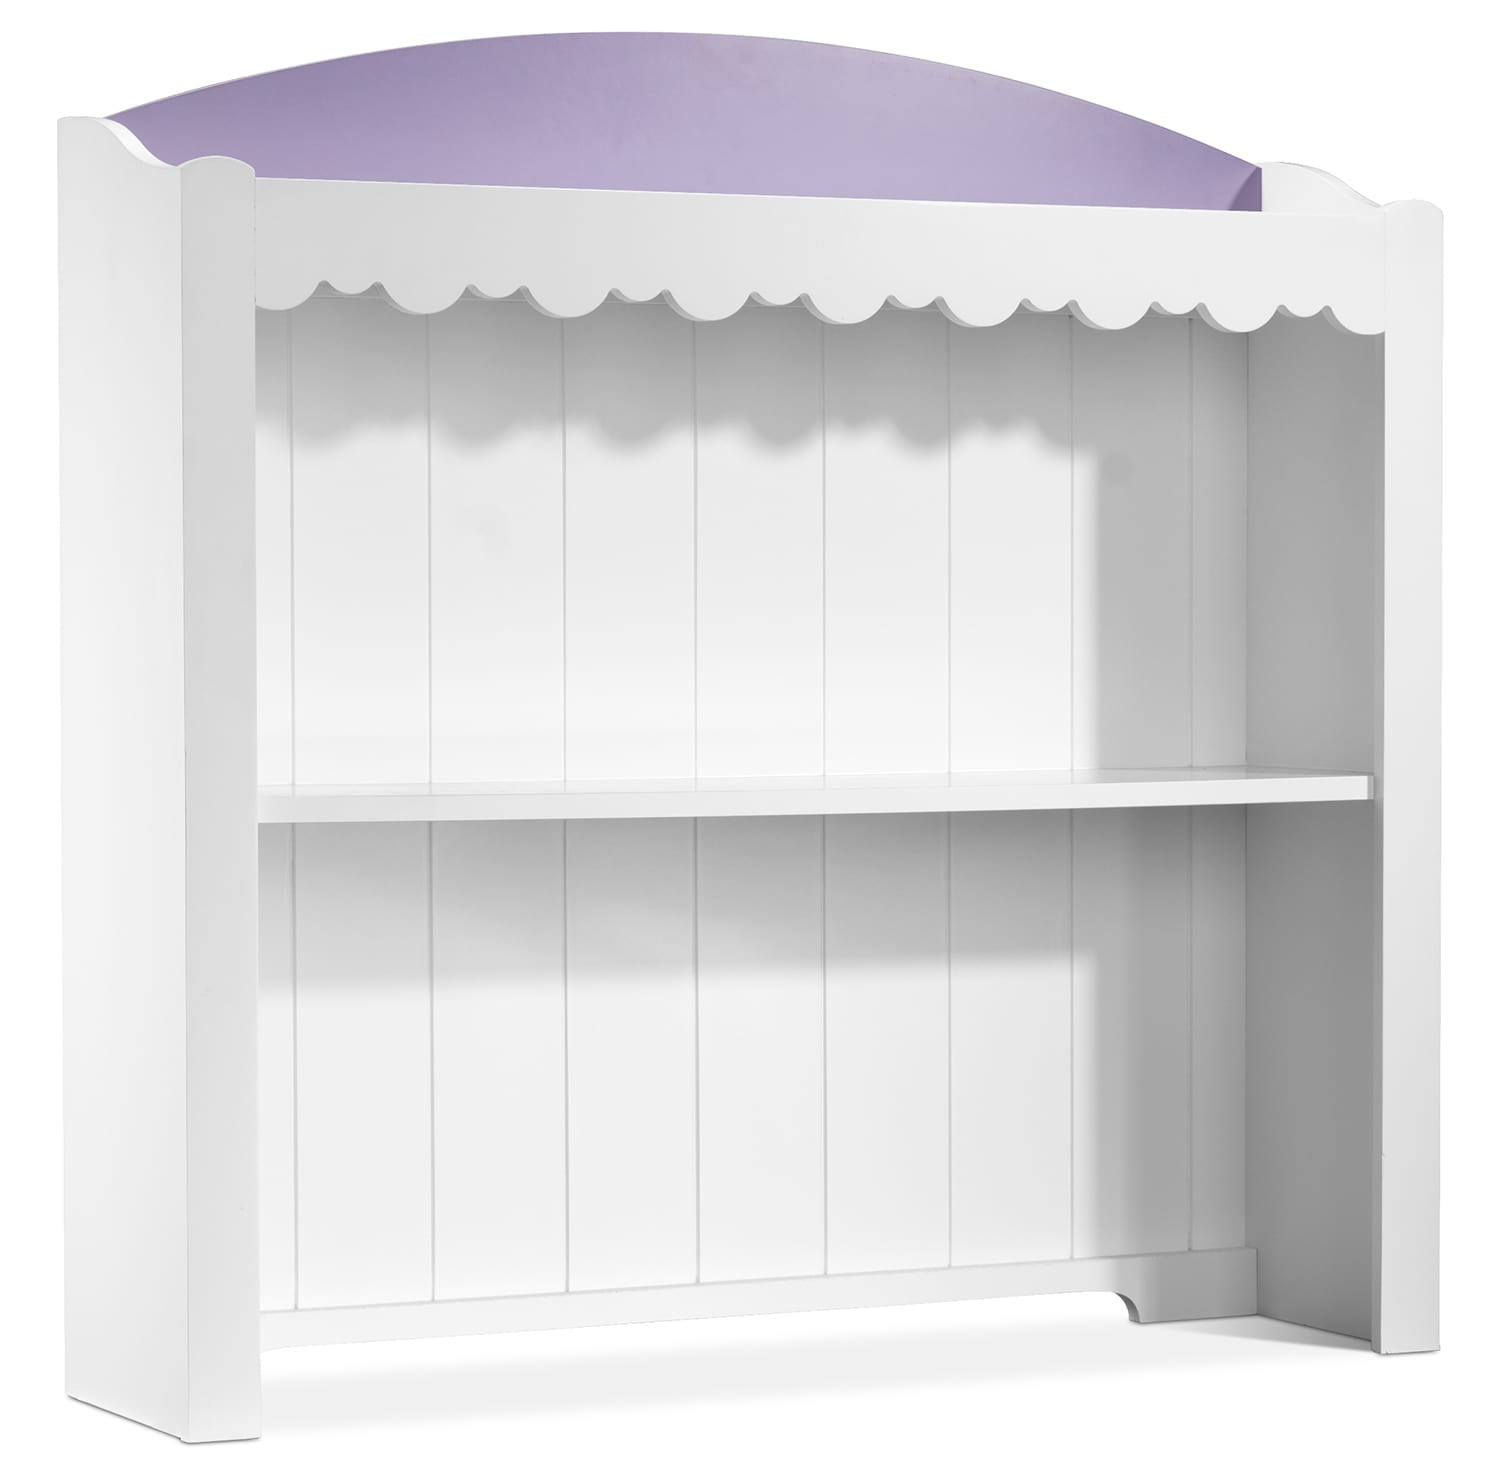 Sweetdreams Desk Hutch - White, Lavender